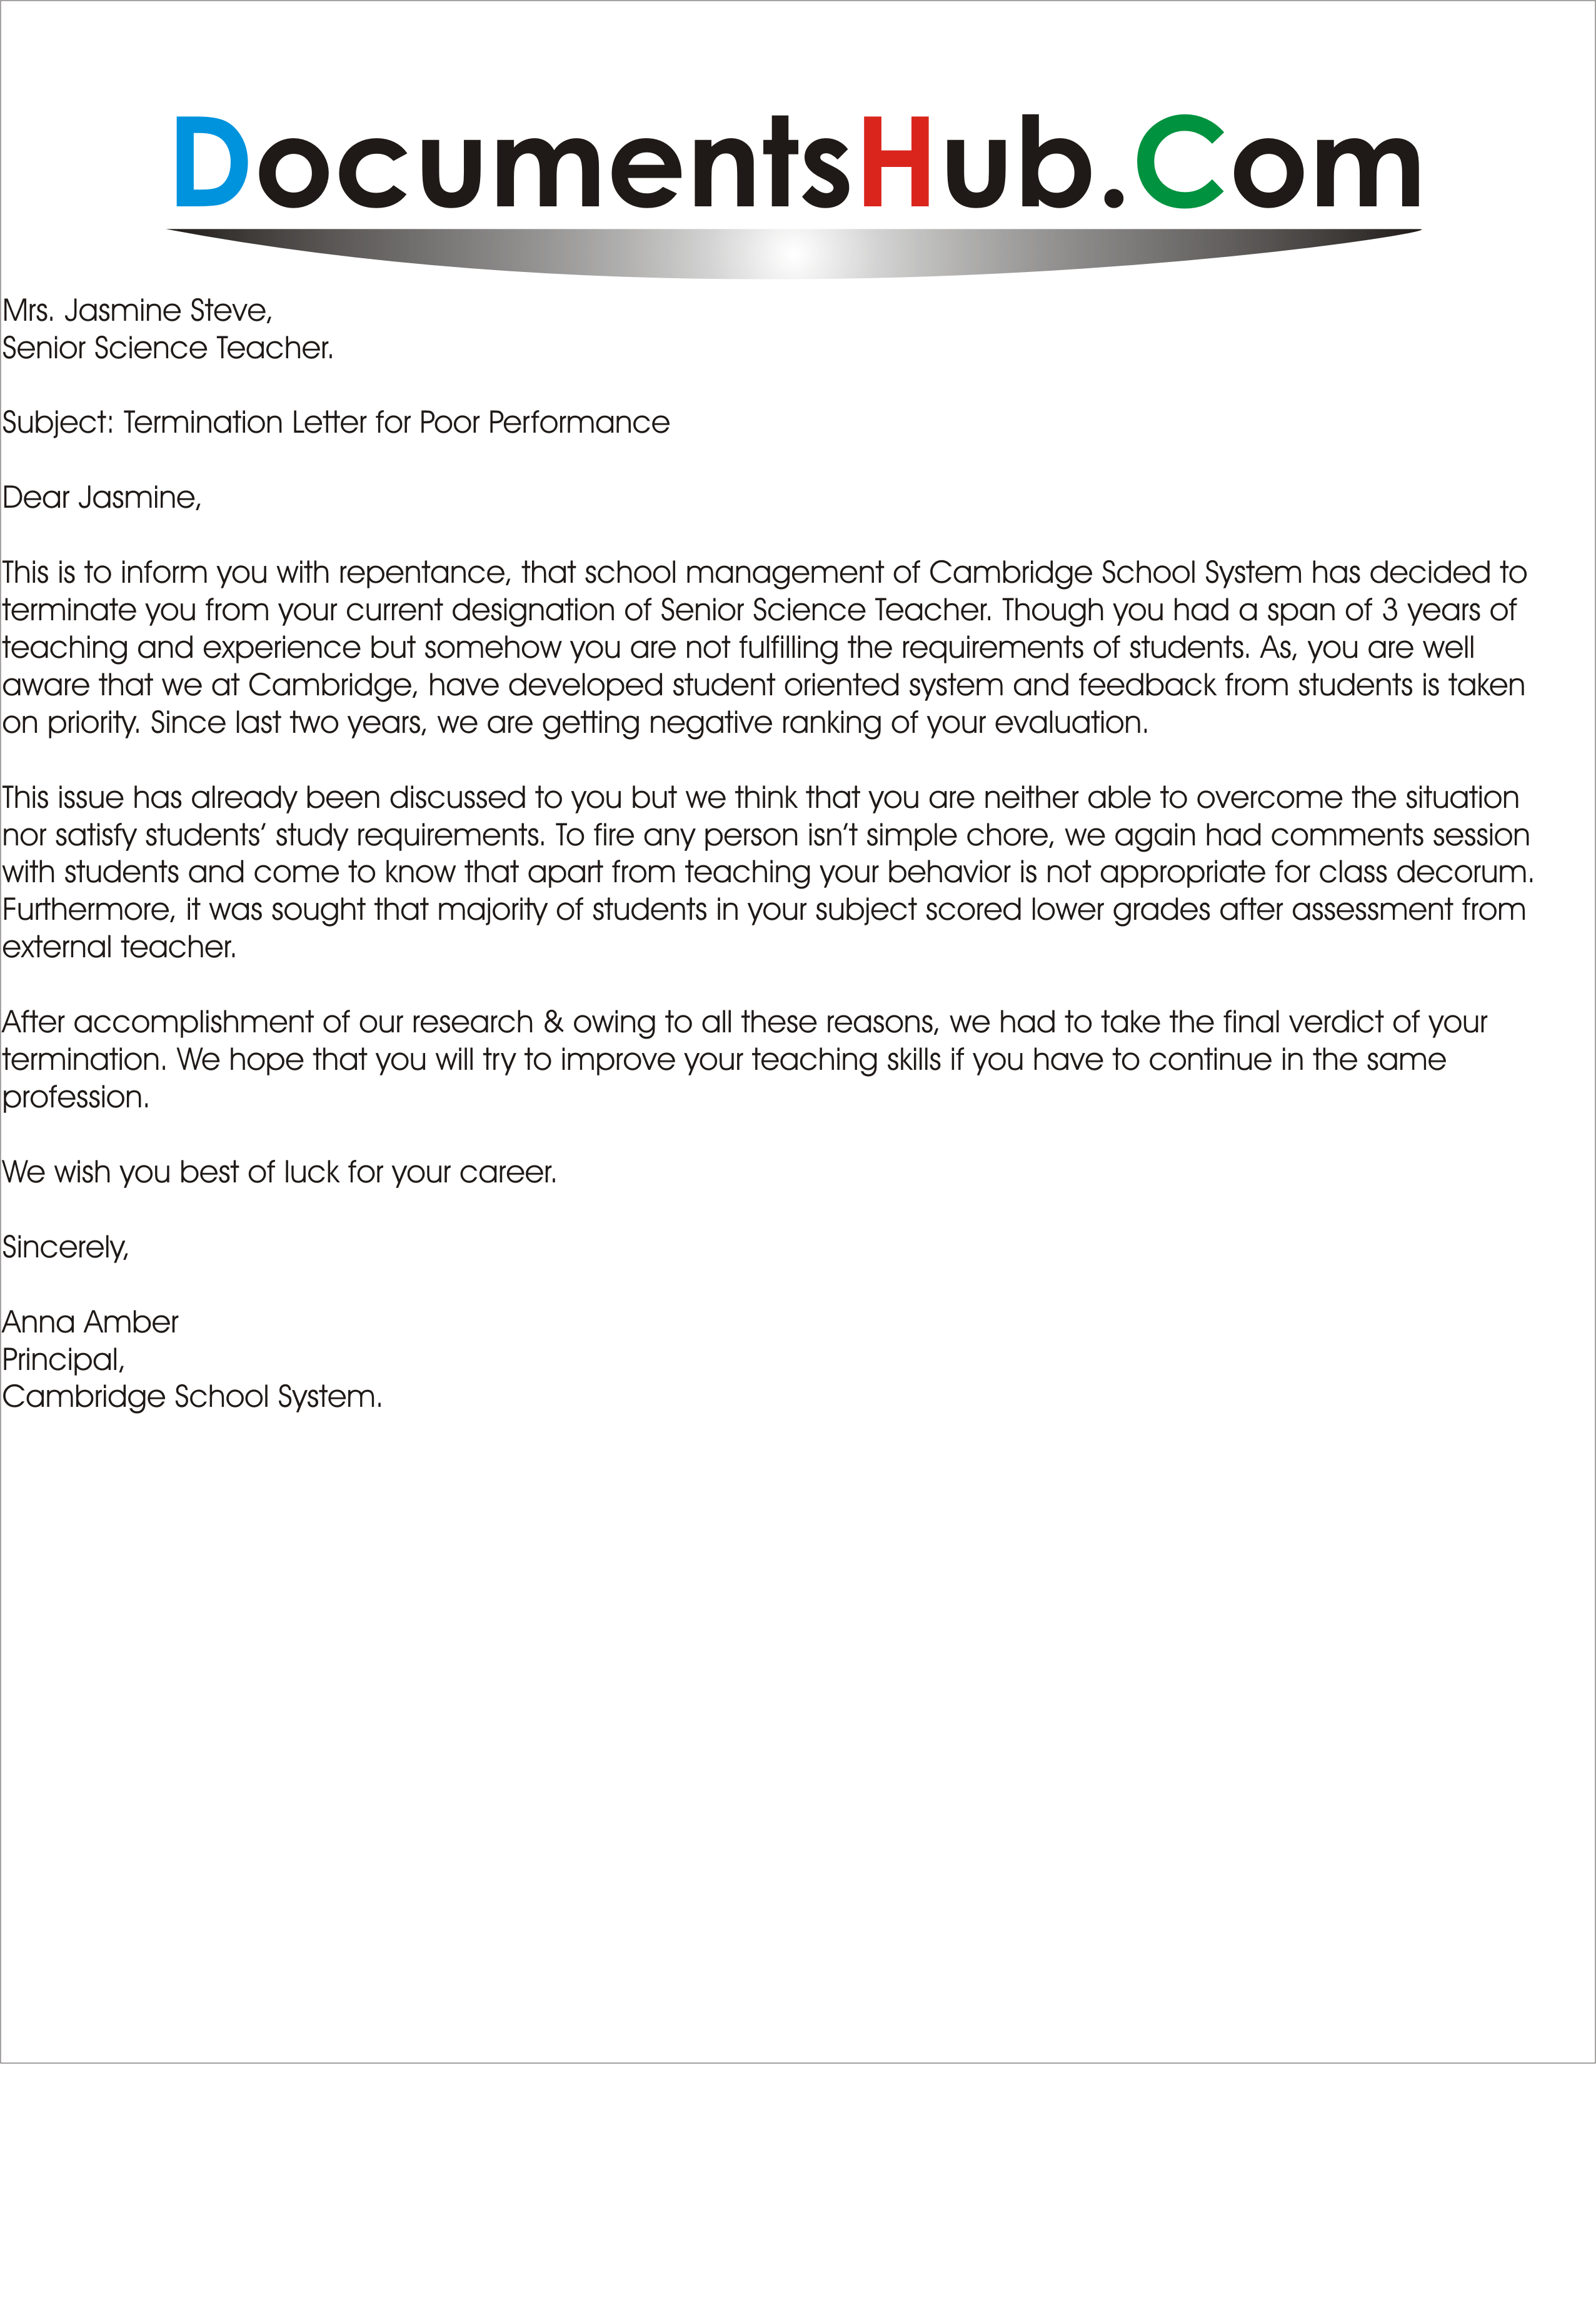 termination letter for poor performance documentshub perfect